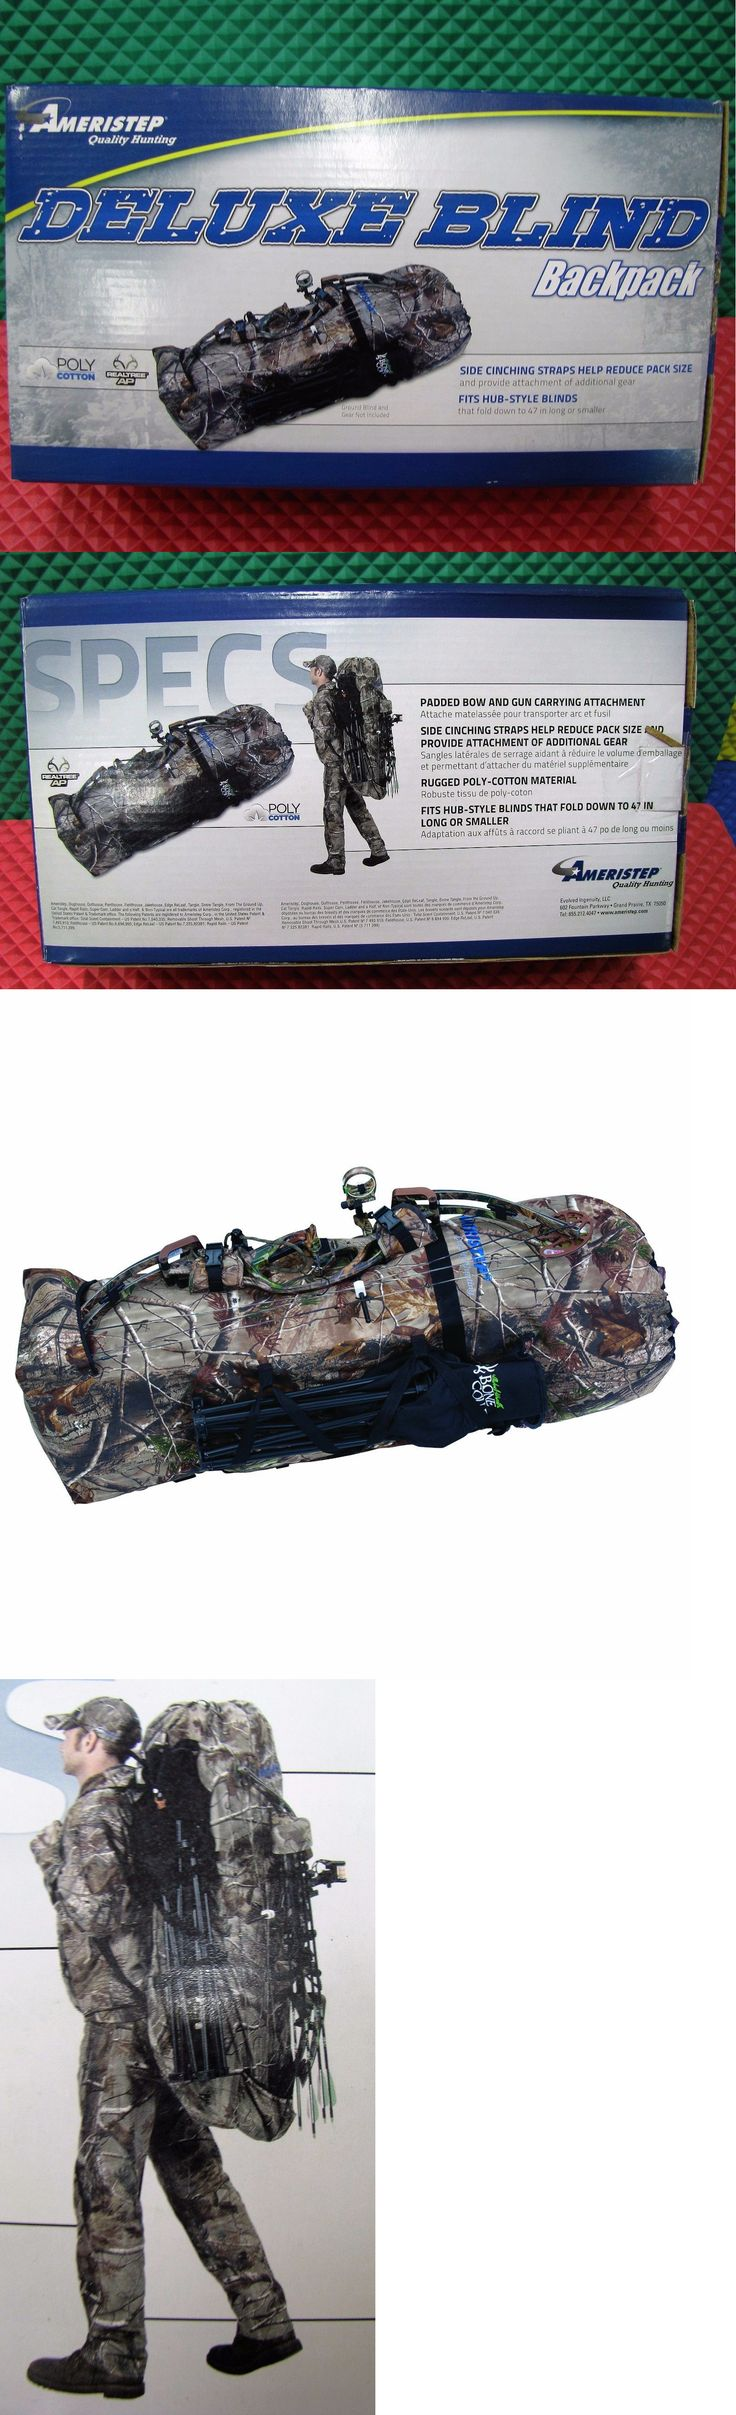 Camouflage Materials 177911: Ameristep Deluxe Blind Backpack Model No. 708 -> BUY IT NOW ONLY: $39.95 on eBay!